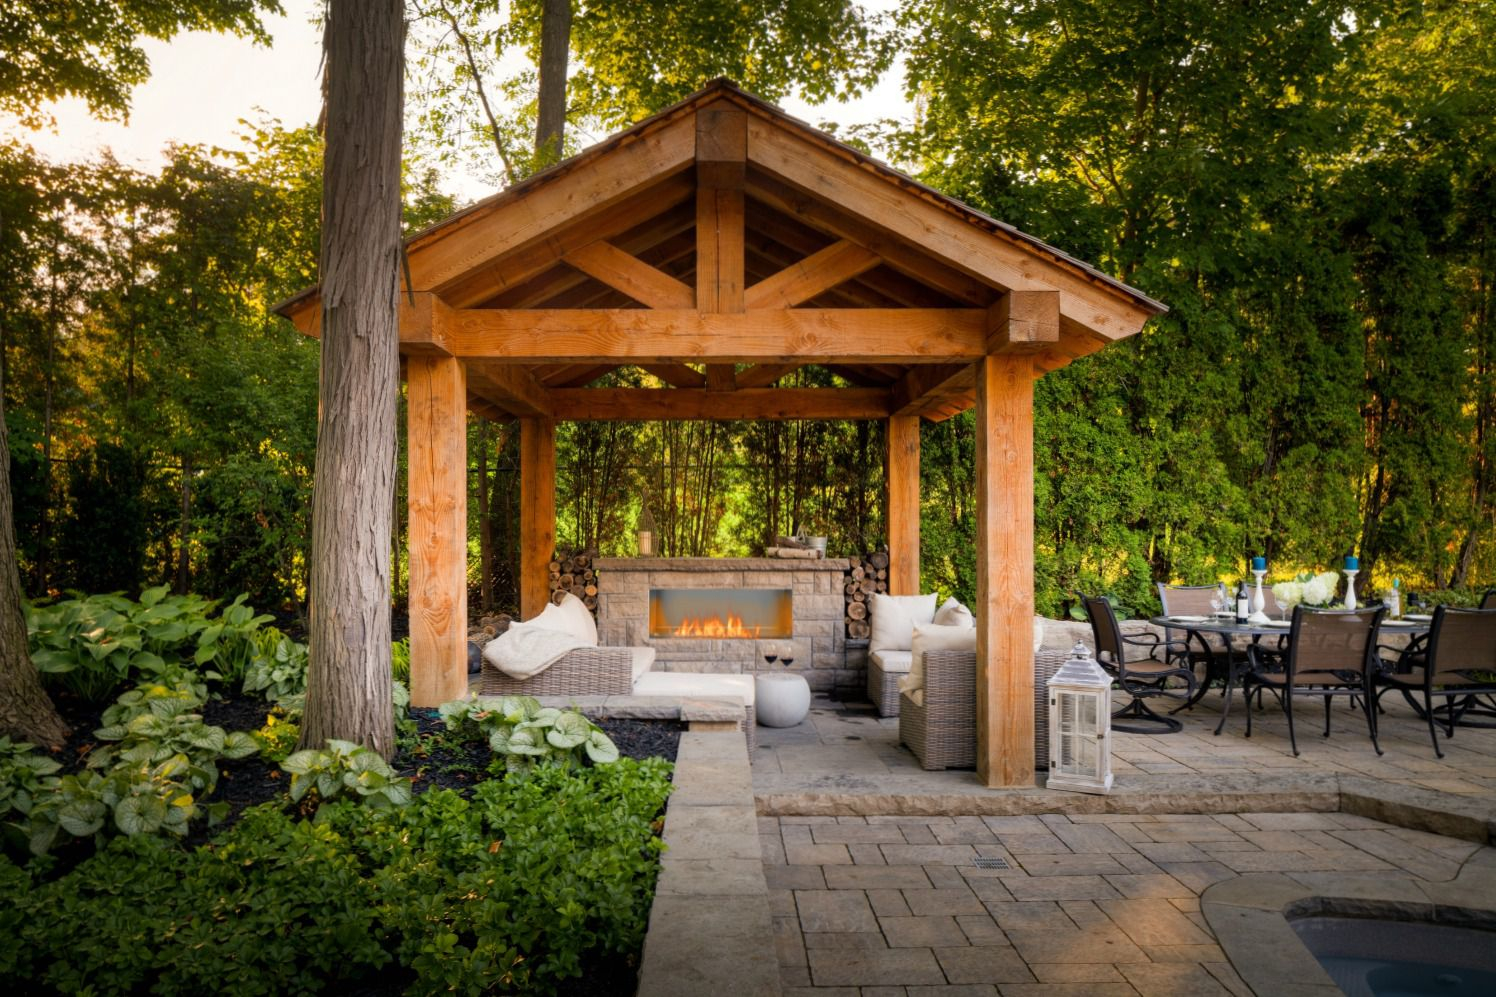 27 Gorgeous Gazebo Design Ideas intended for 12 Genius Ways How to Make Backyard Gazebo Ideas